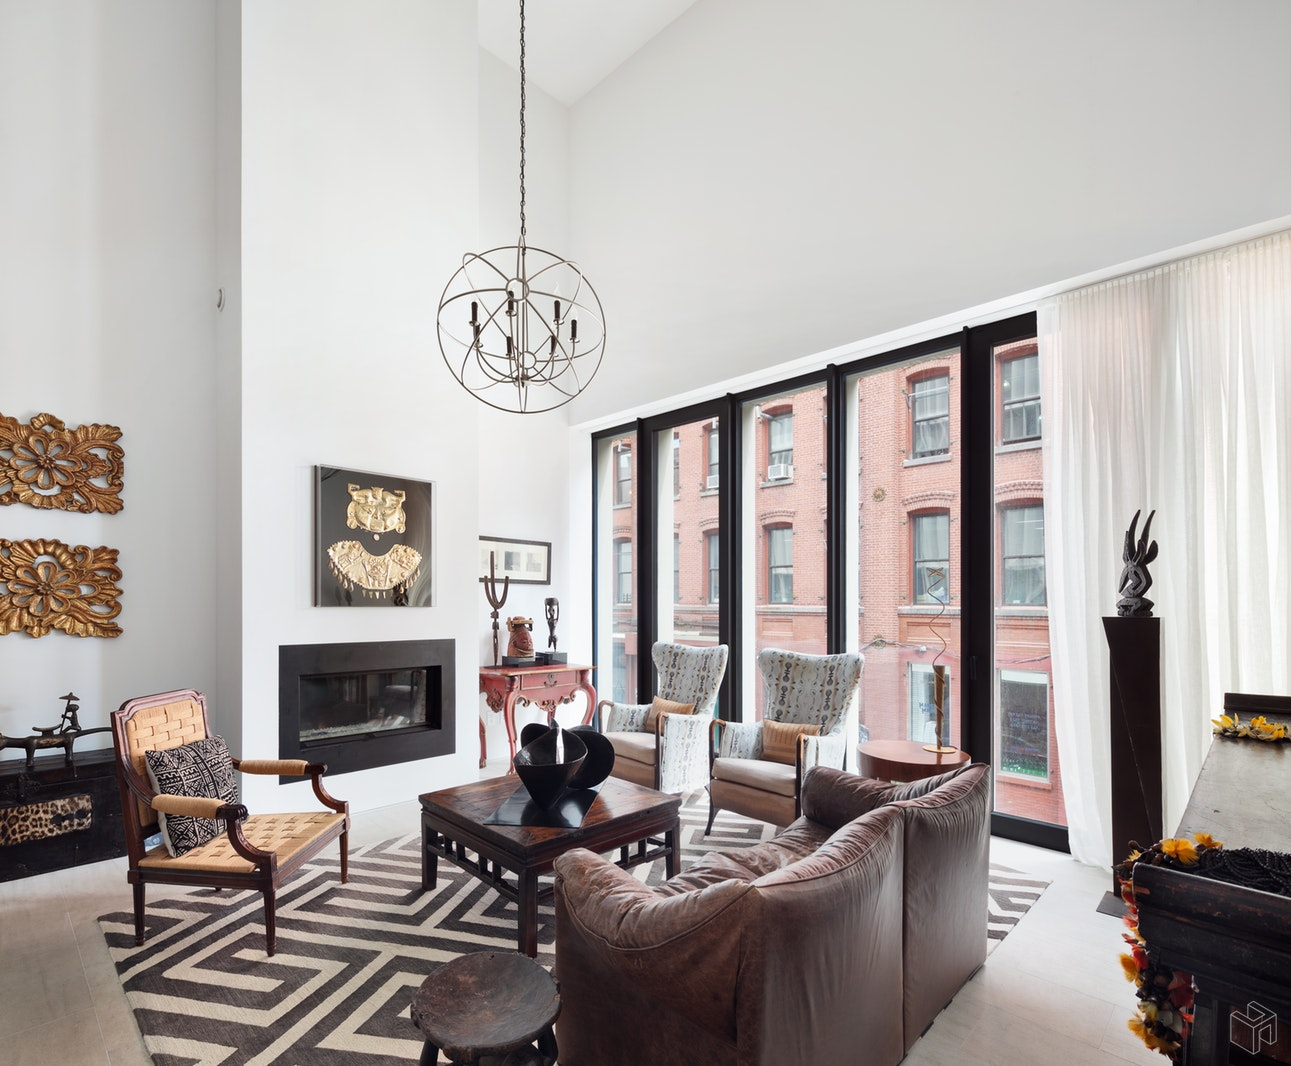 169 Water Street, Brooklyn, Brooklyn, NY, 11201, $4,995,000, Property For Sale, Halstead Real Estate, Photo 3